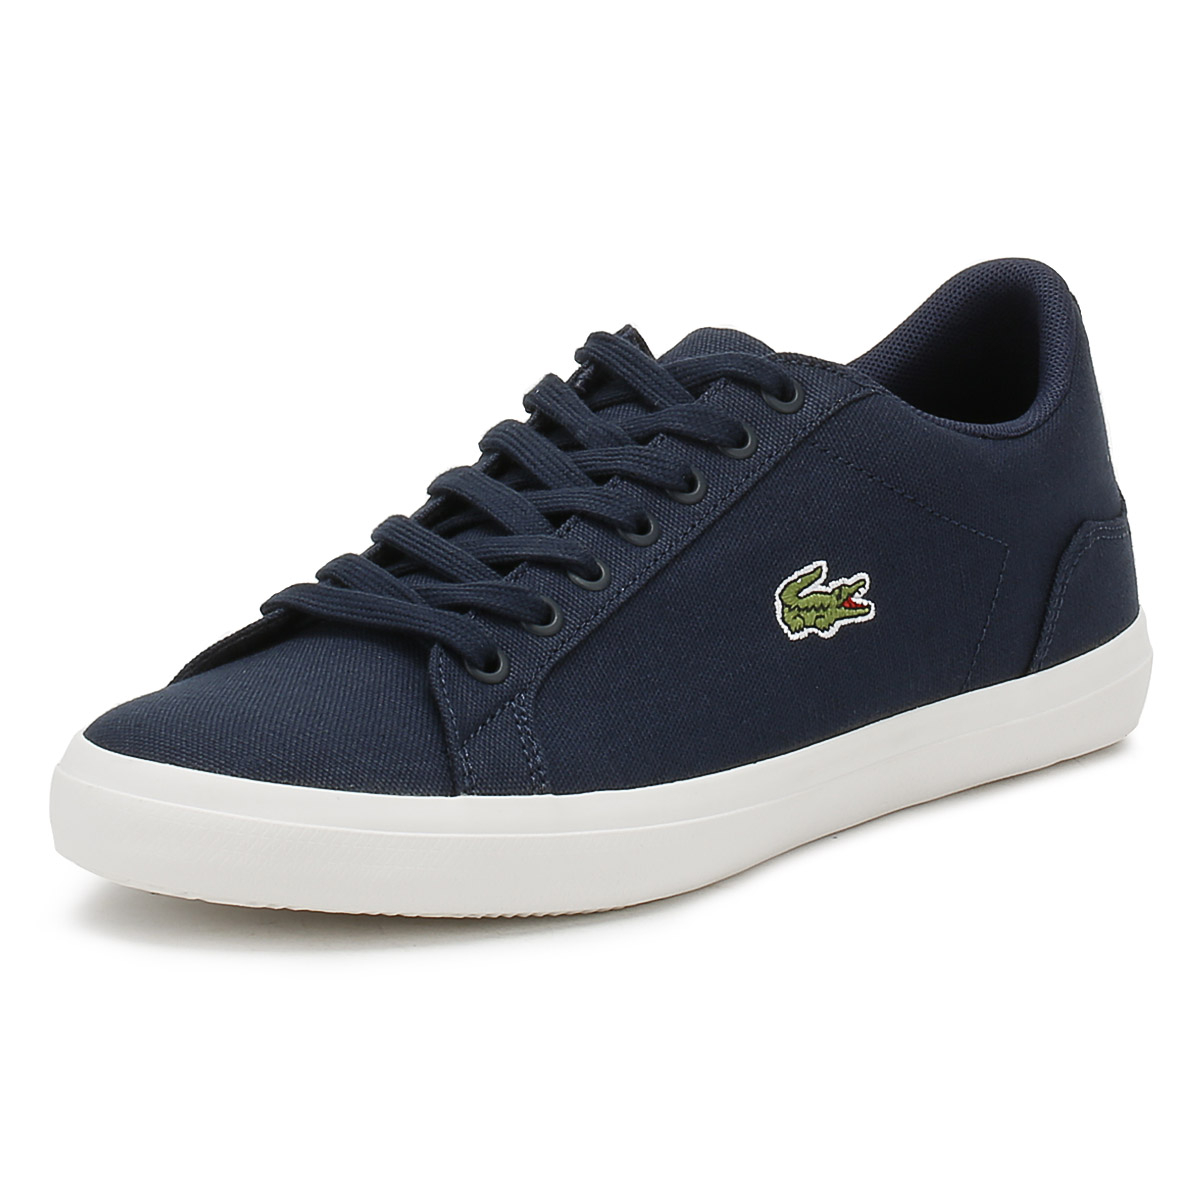 d972b2f59b8f Details about Lacoste Mens Trainers Navy Blue Lerond BL 2 CAM Sport Casual  Canvas Shoes